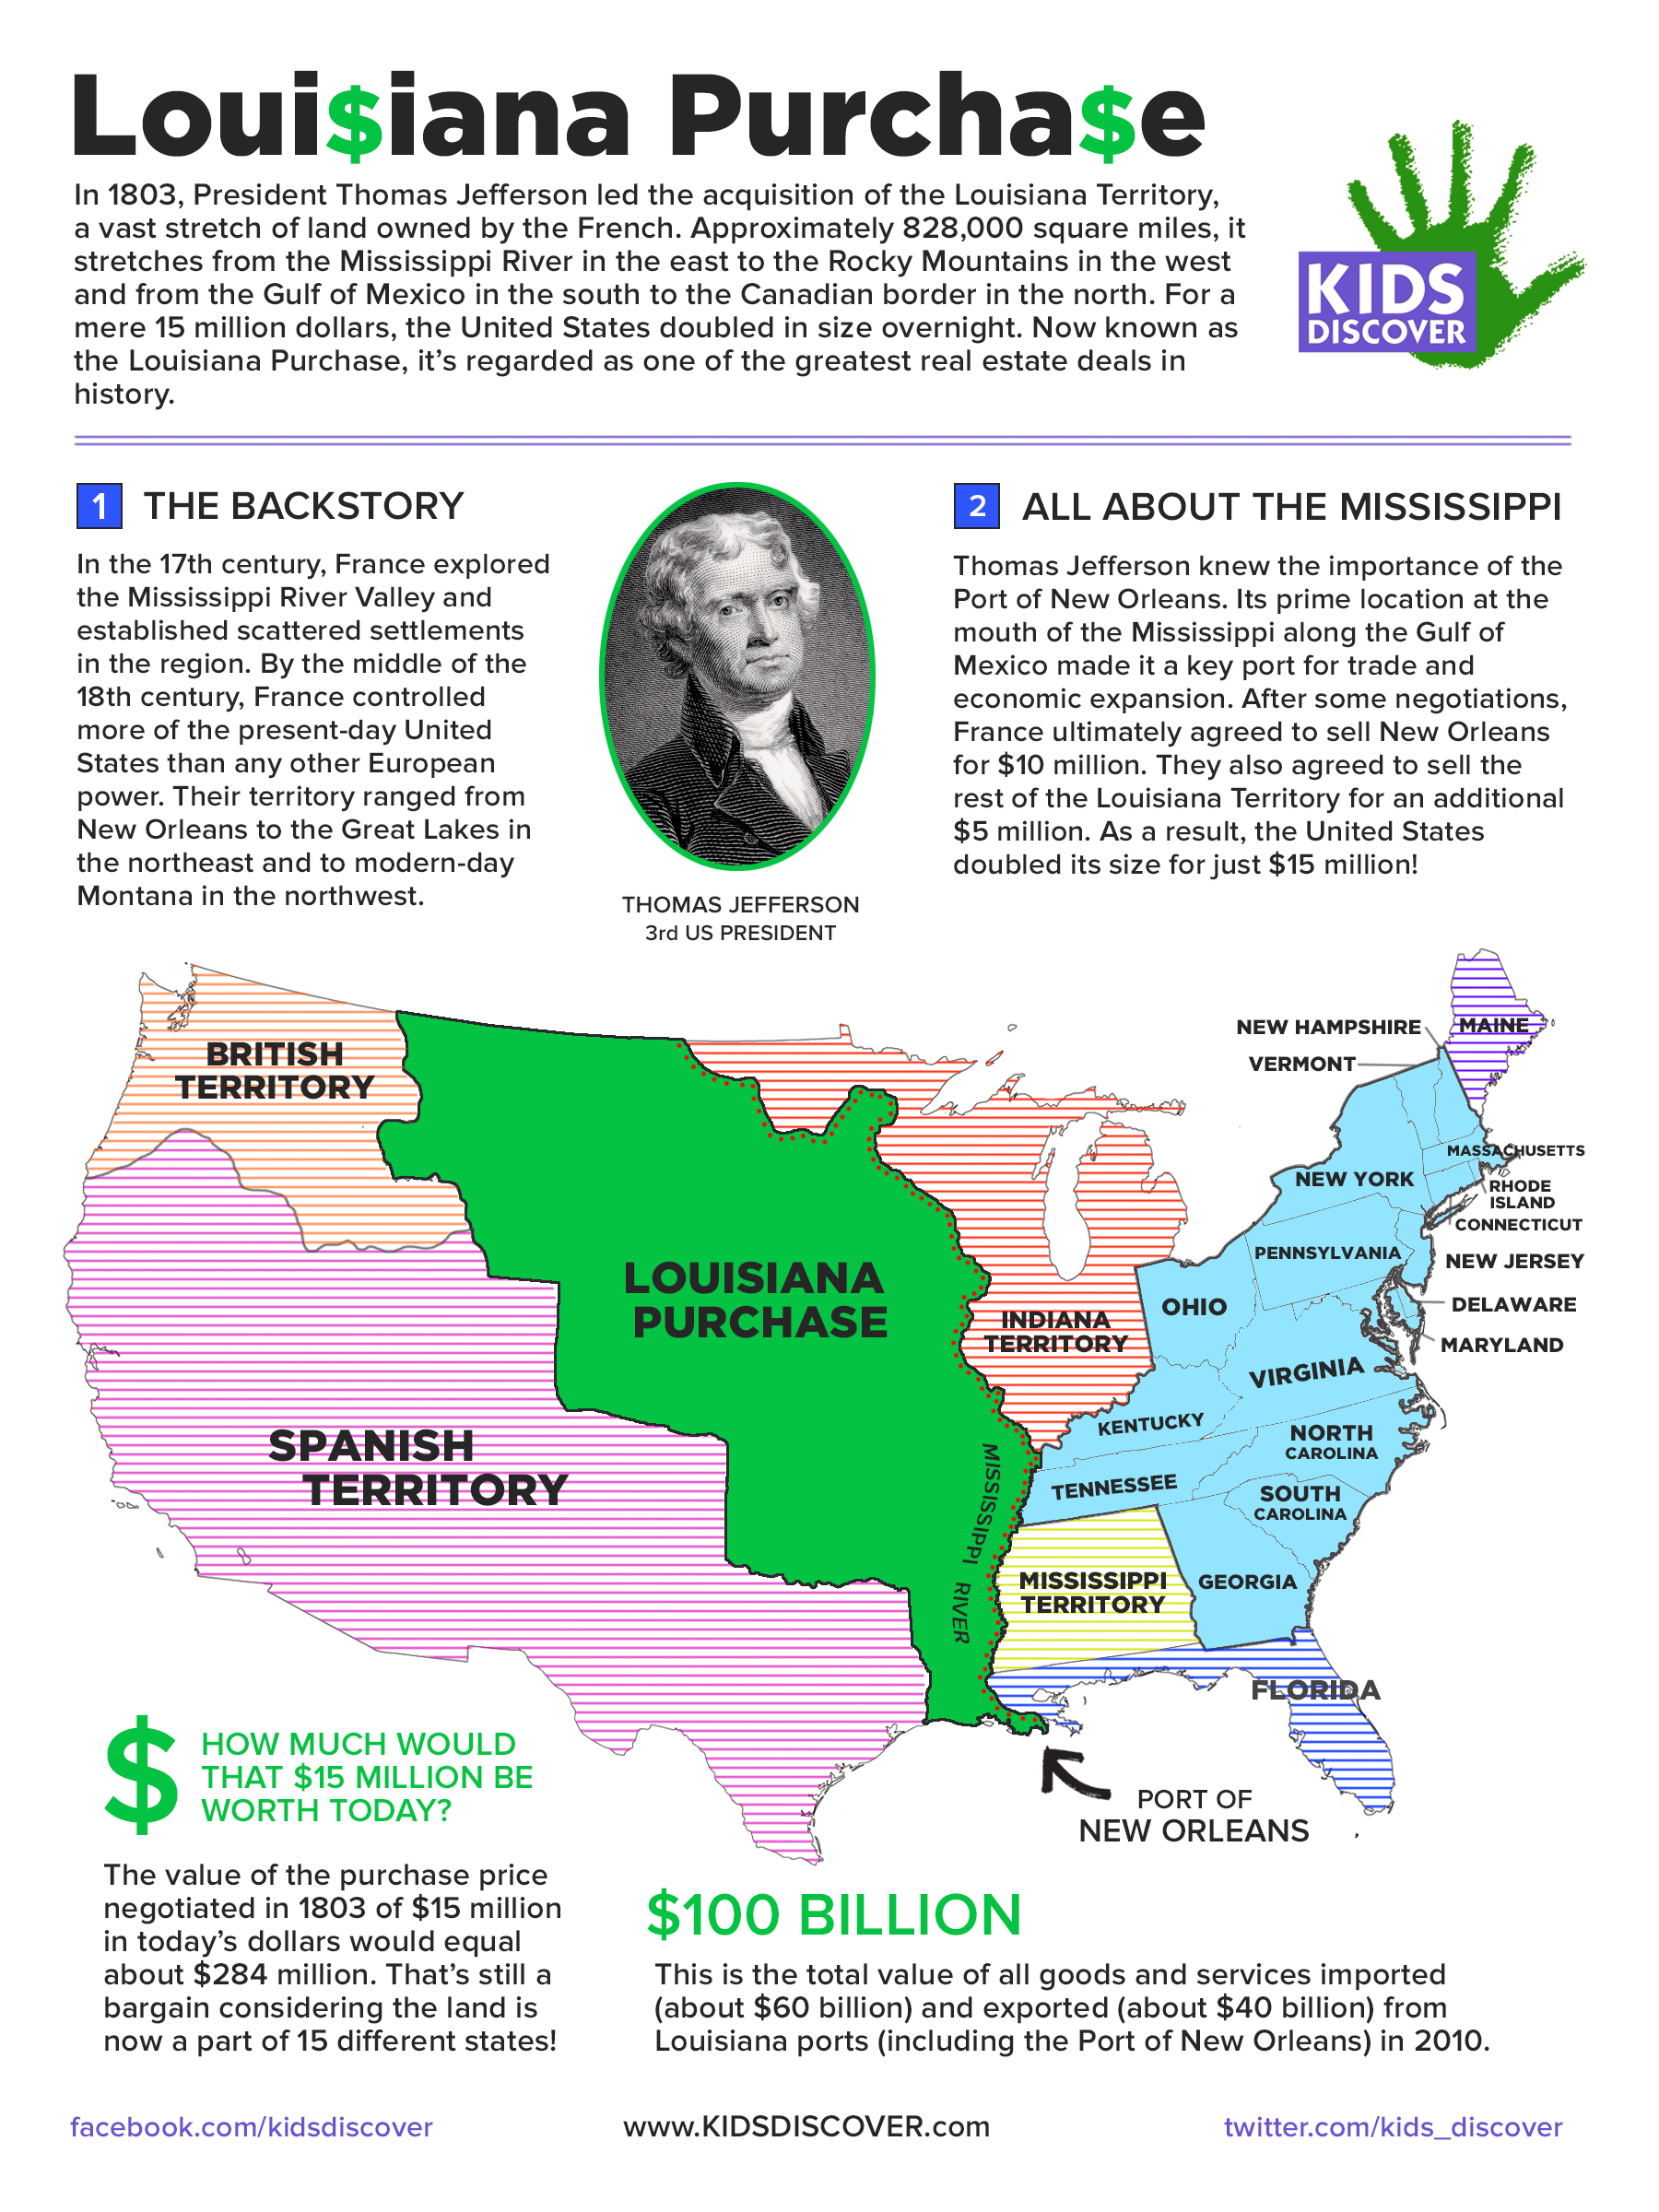 Worksheets Louisiana Purchase Activity : Infographic the louisiana purchase kids discover